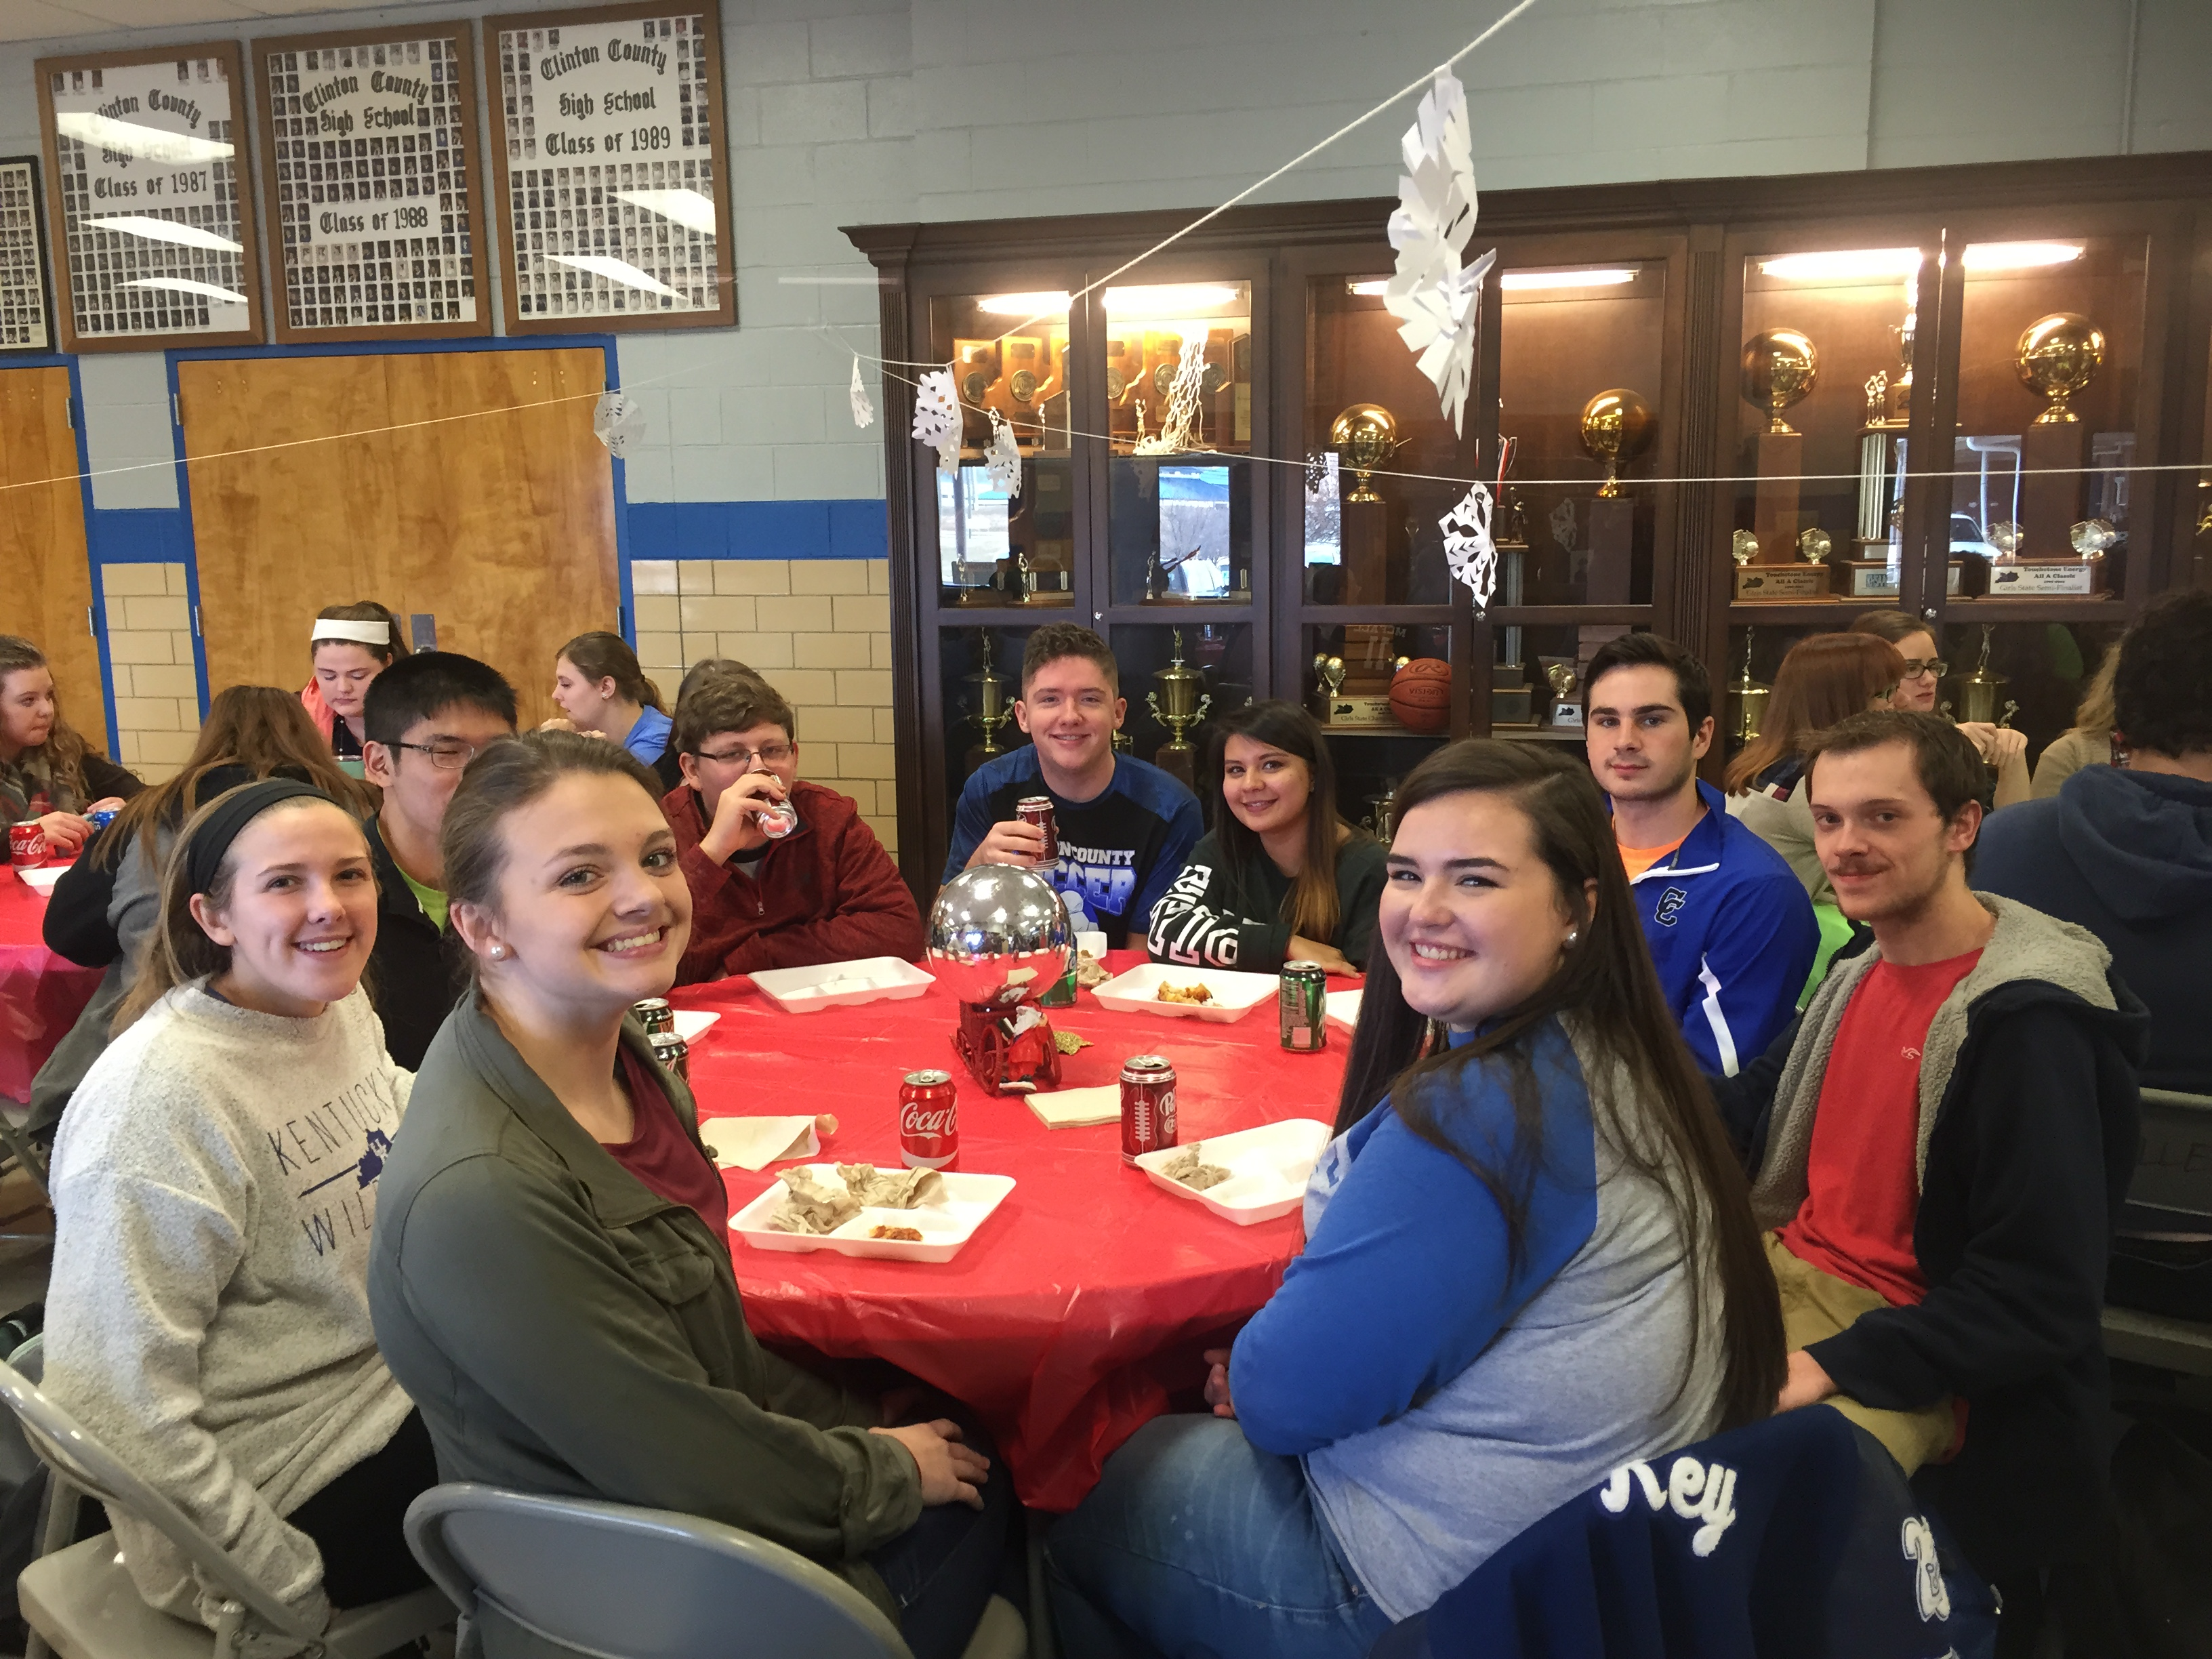 All CCHS seniors who have attained College & Career Readiness were honored at a Christmas party on December 7th.